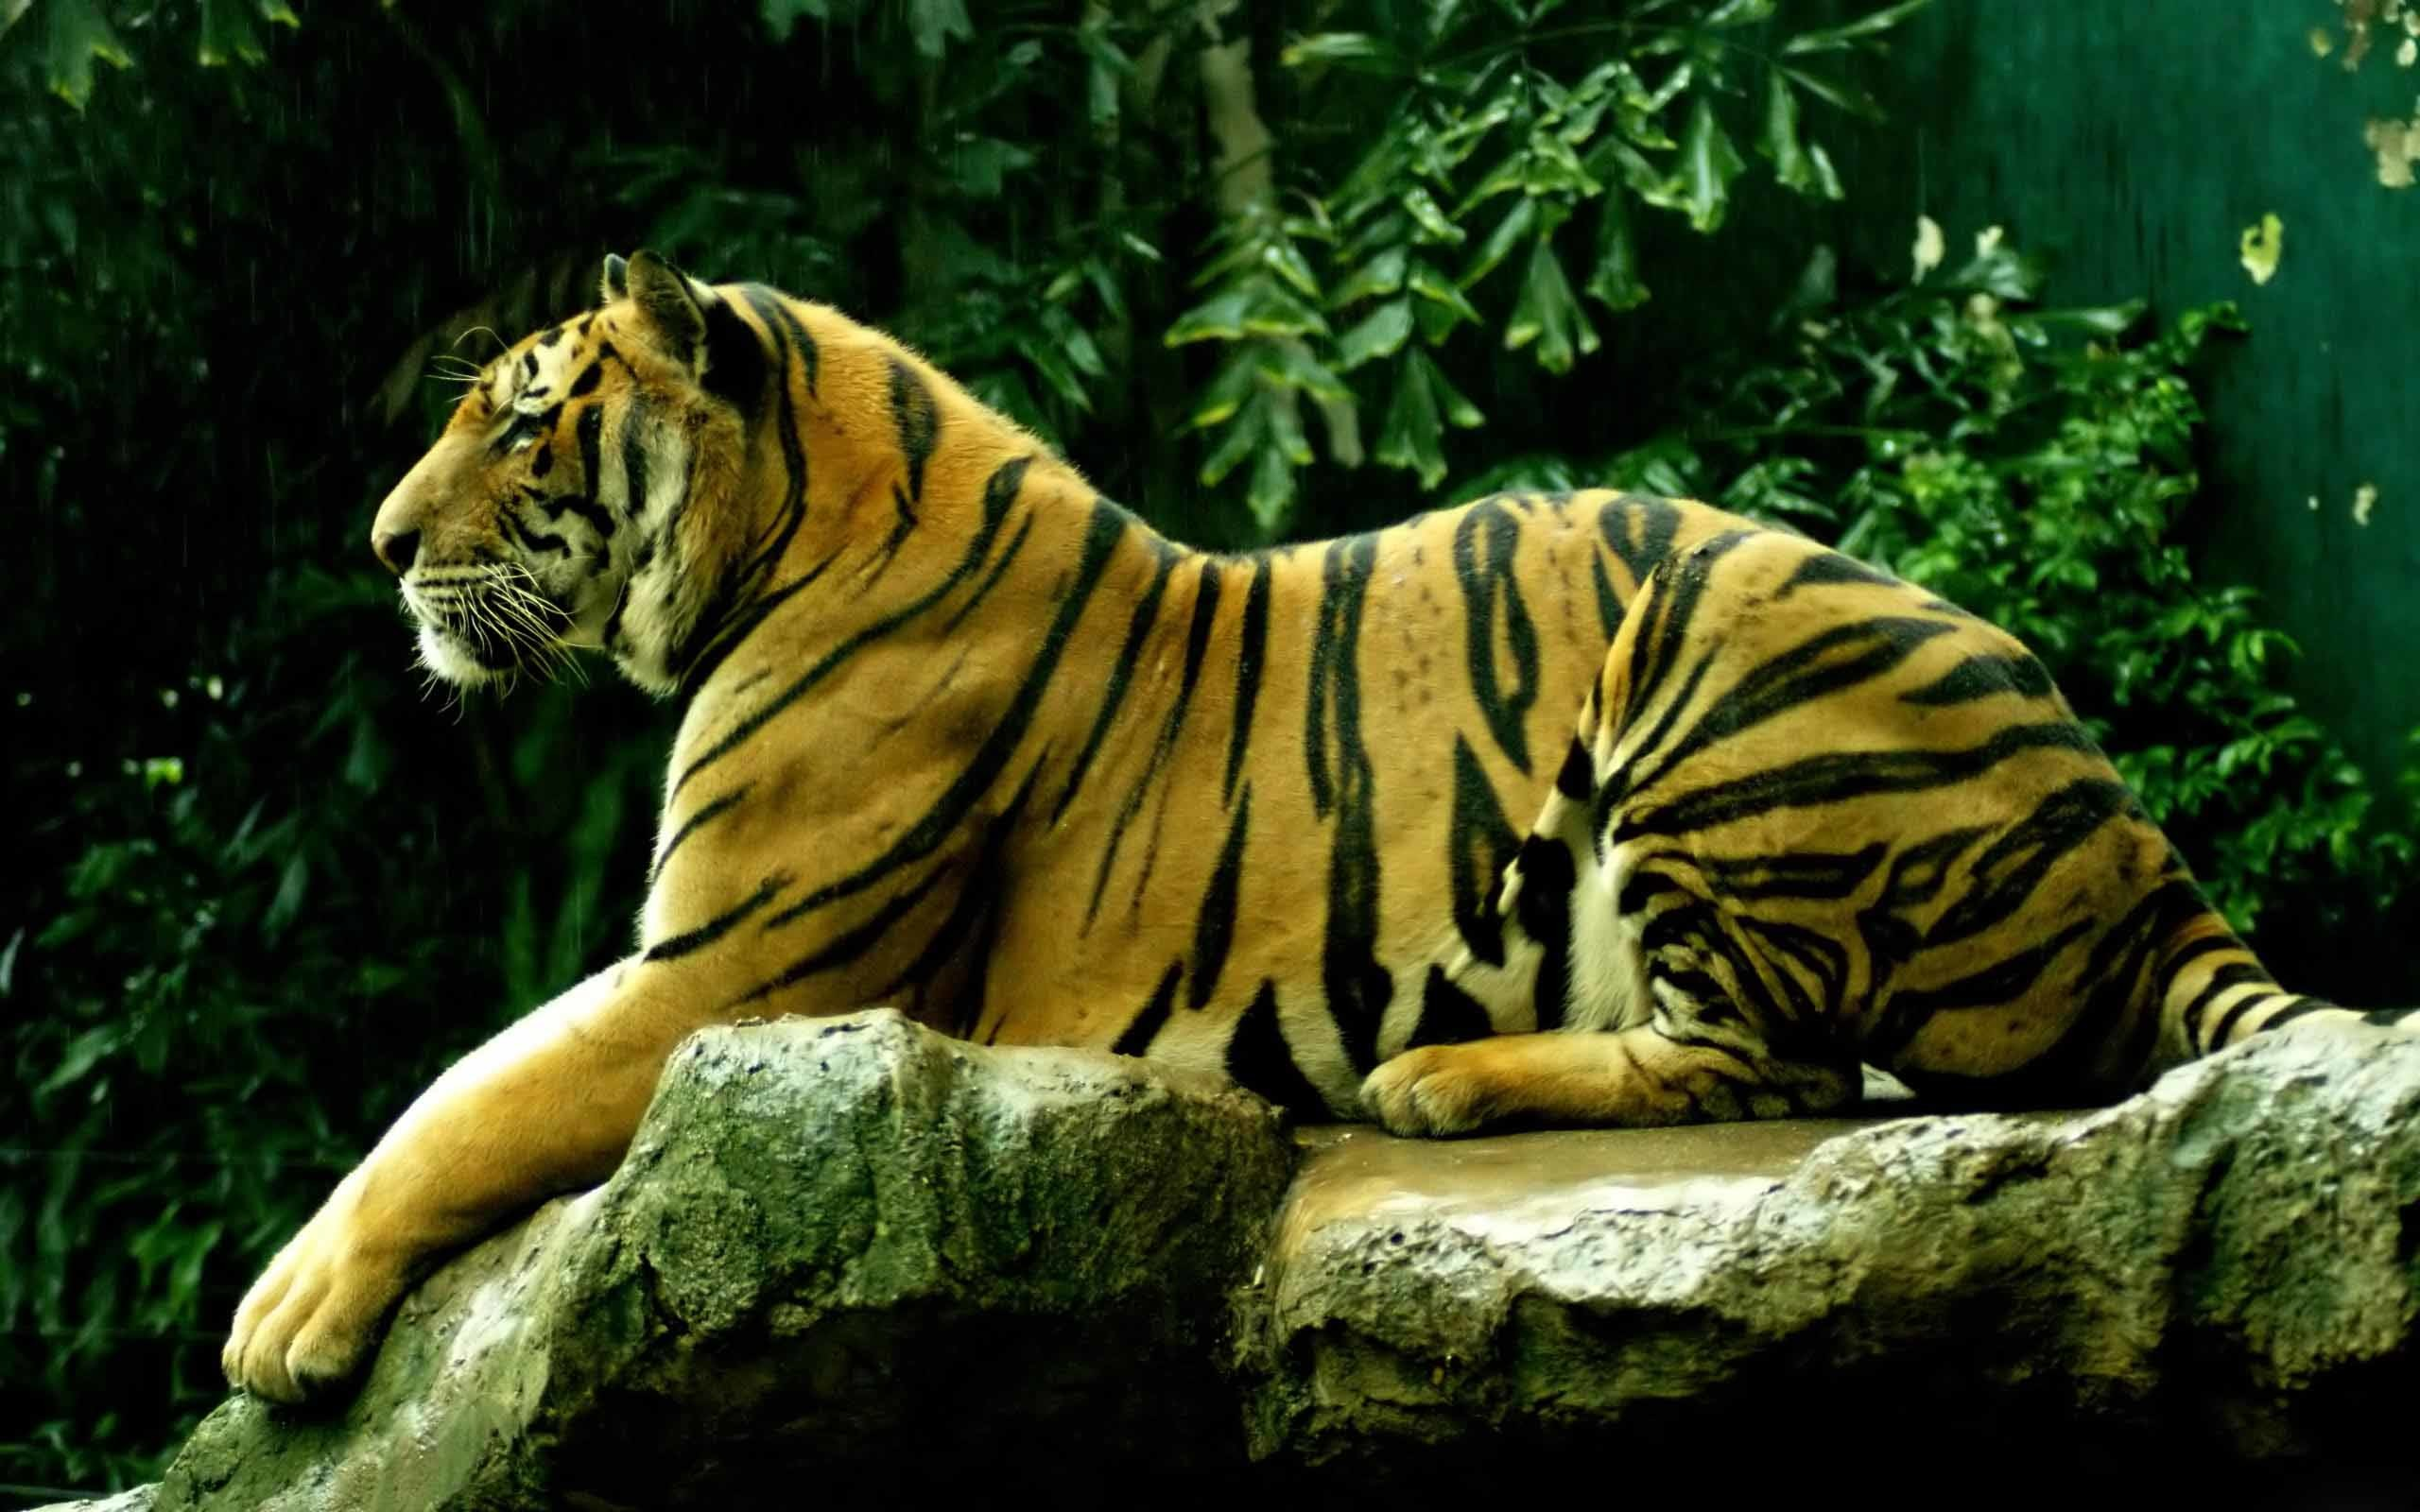 Res: 2560x1600, Impressive Moving Animal Wallpapers - Download for Free - ModaFinilsale